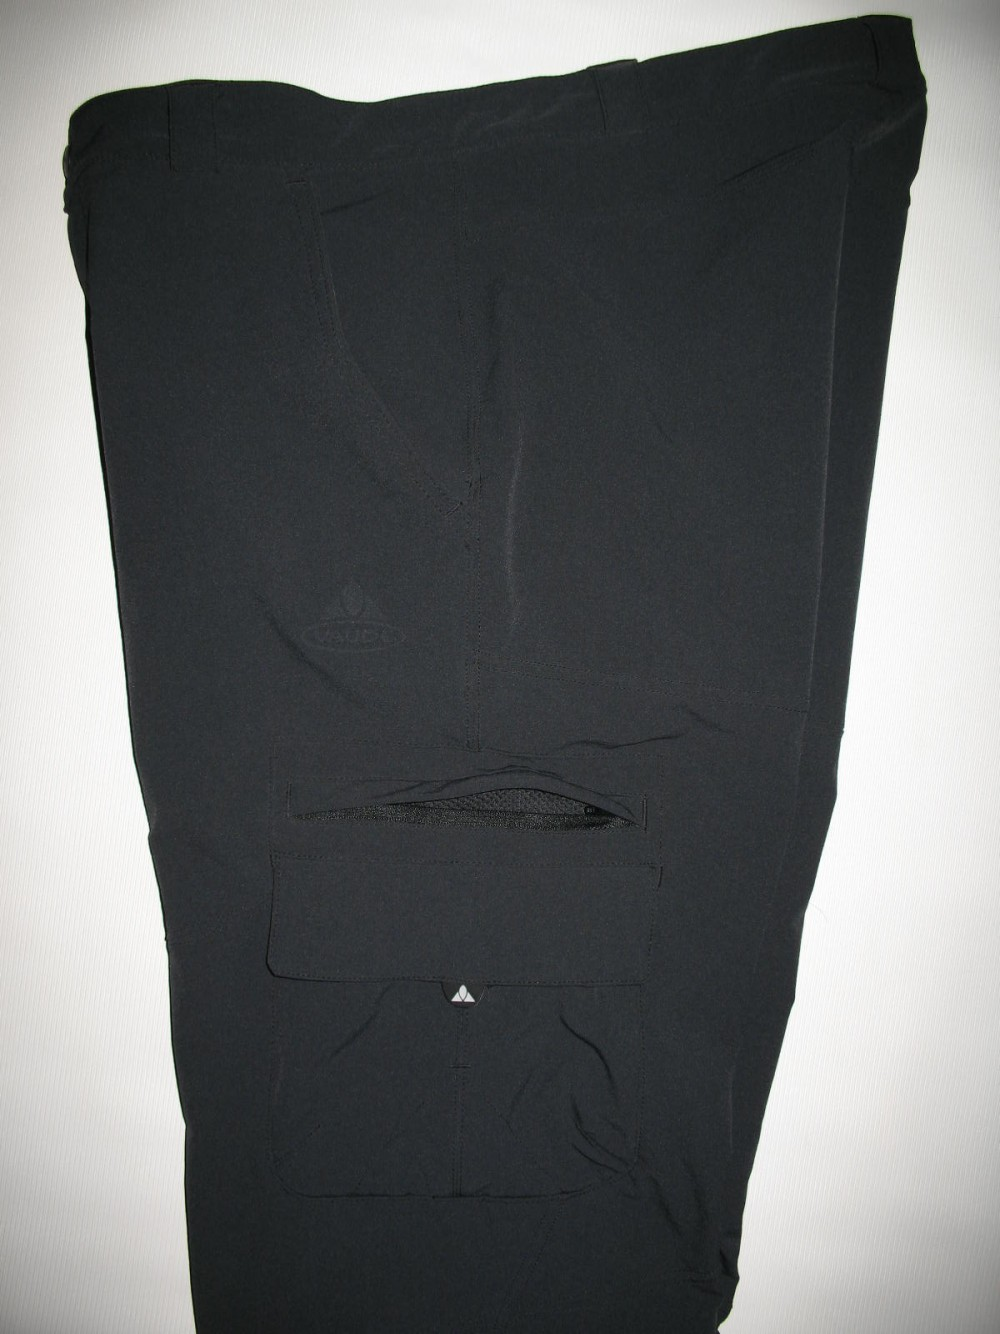 Штаны VAUDE softshell outdoor pants (размер 46/M) - 4